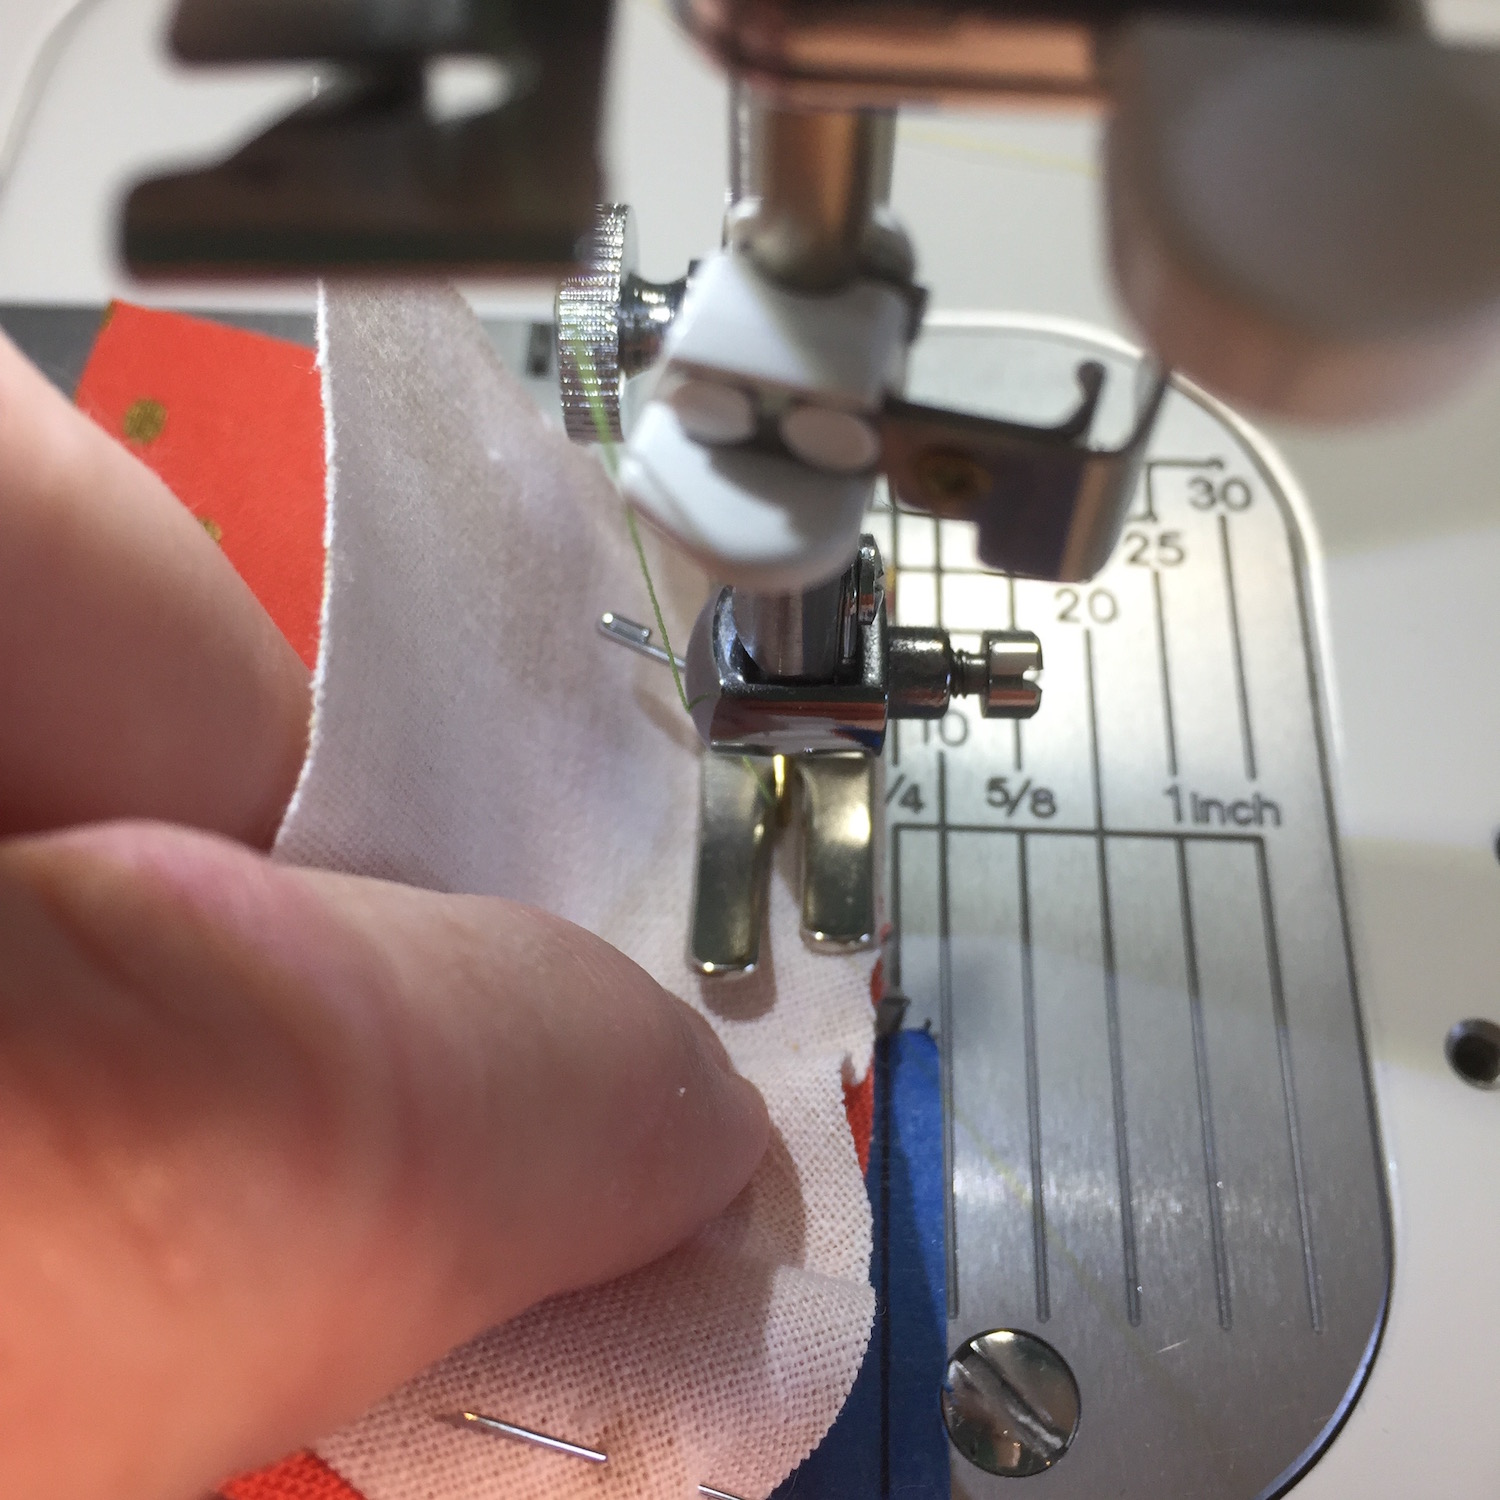 With the needle down you may have to lift the presser foot and adjust the fabric to keep it even and at ¼ inch